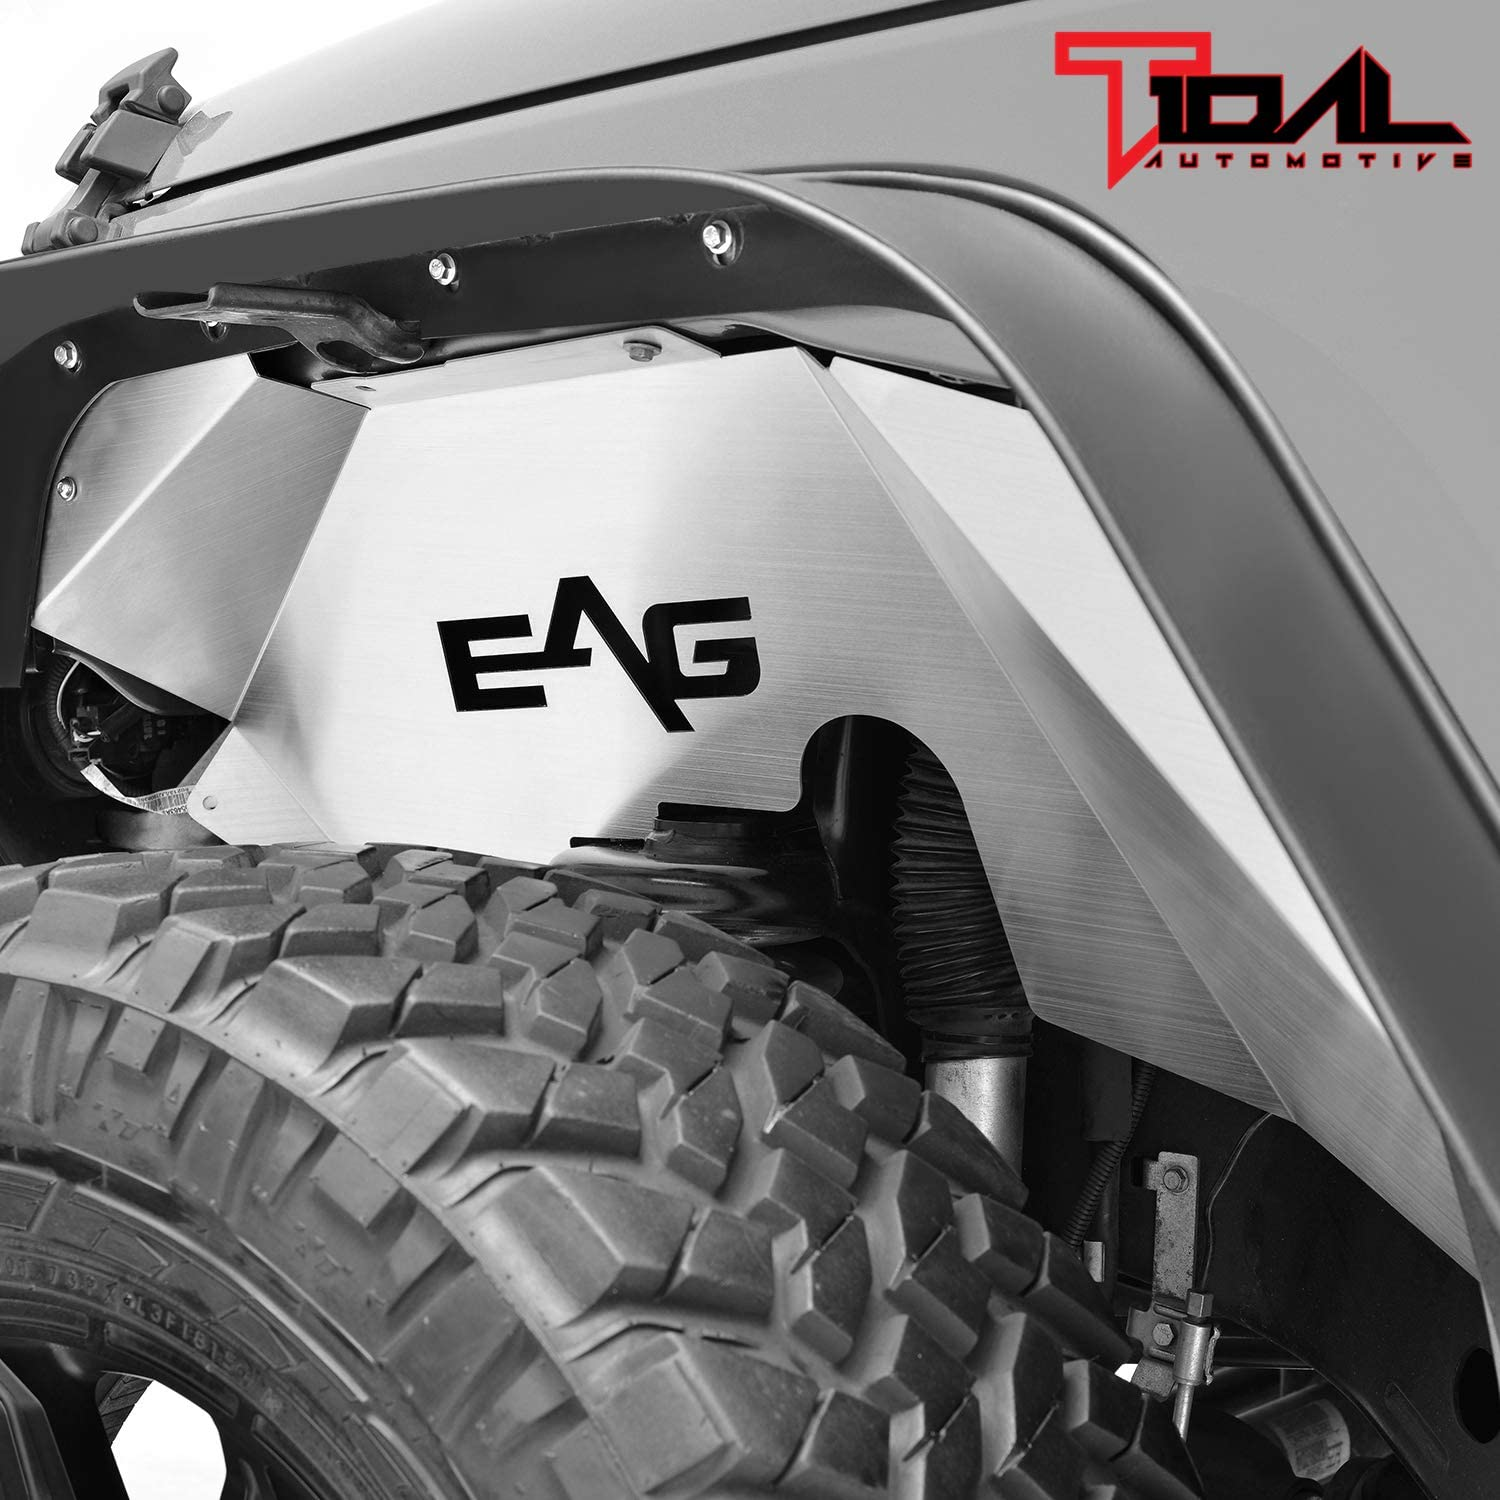 Tidal Compatible with Front Fender Flares with 07-18 Wrangler JK